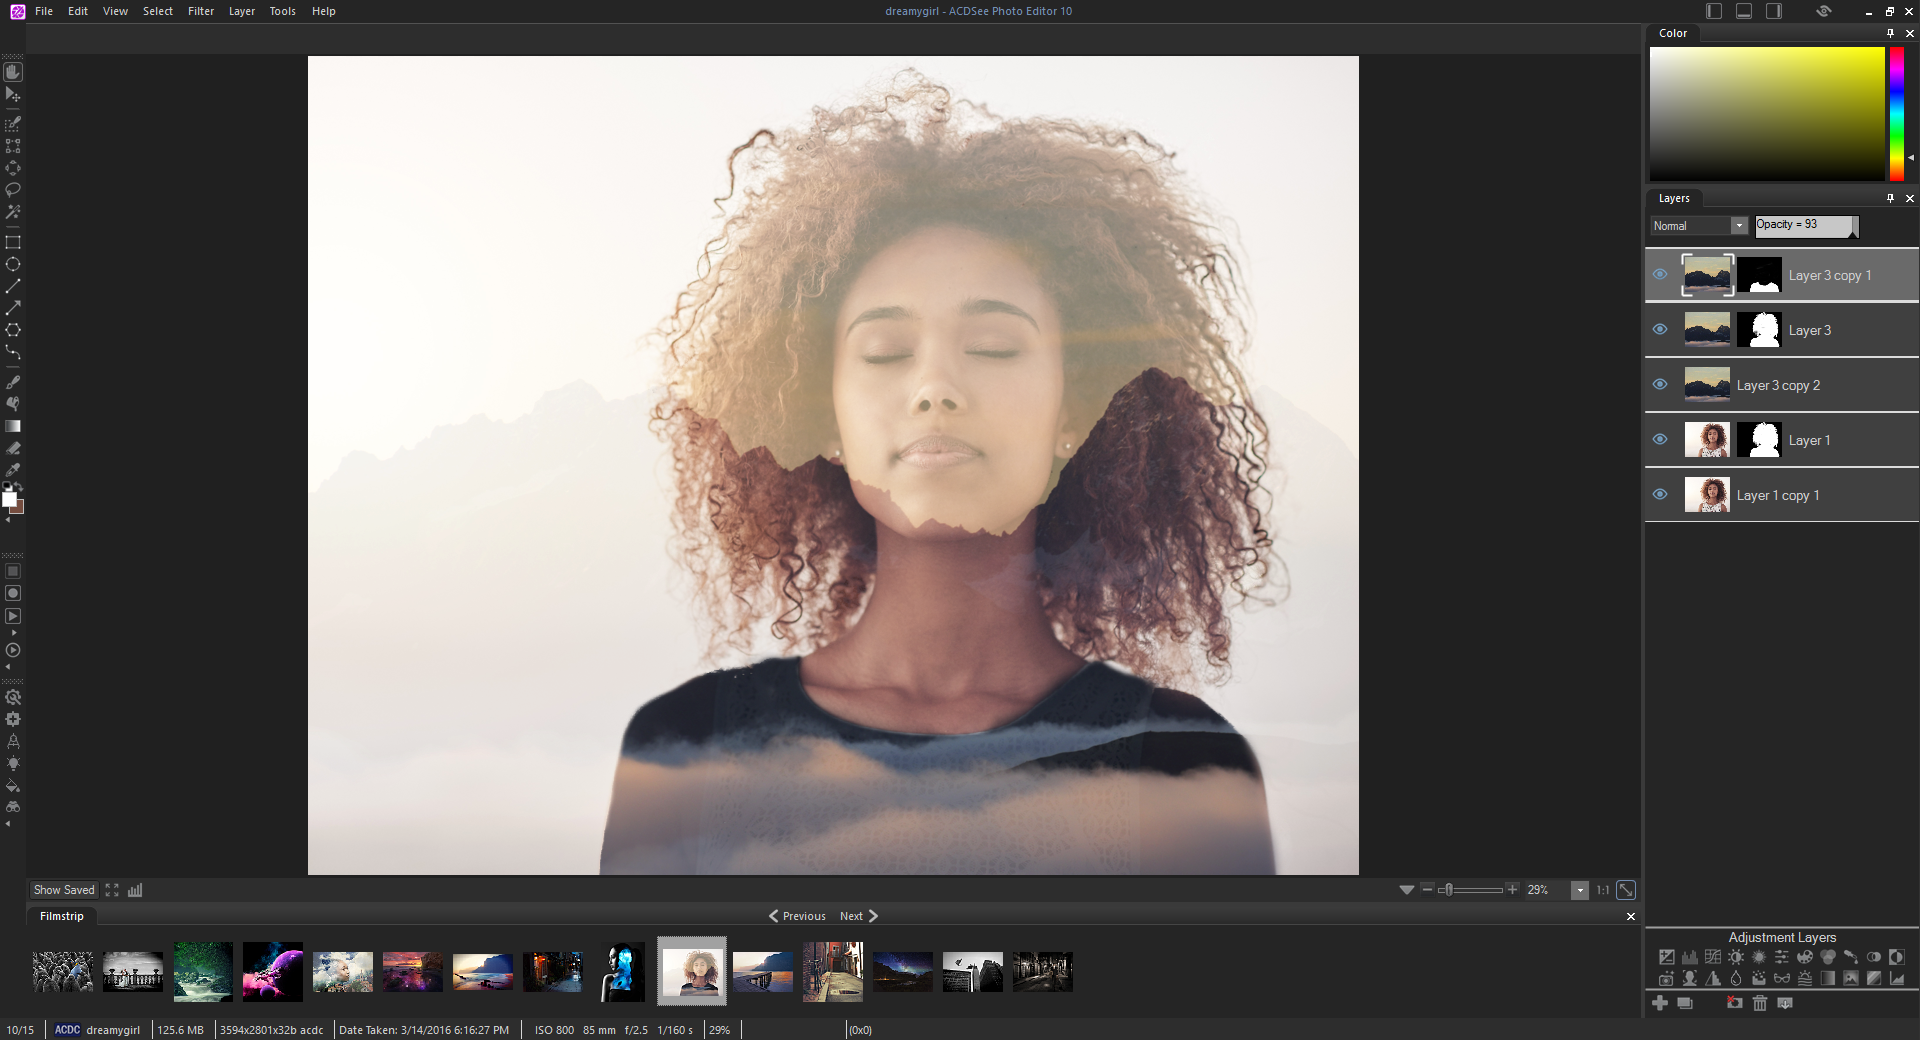 ACDSee Photo Editor 6 Product Support and Resources